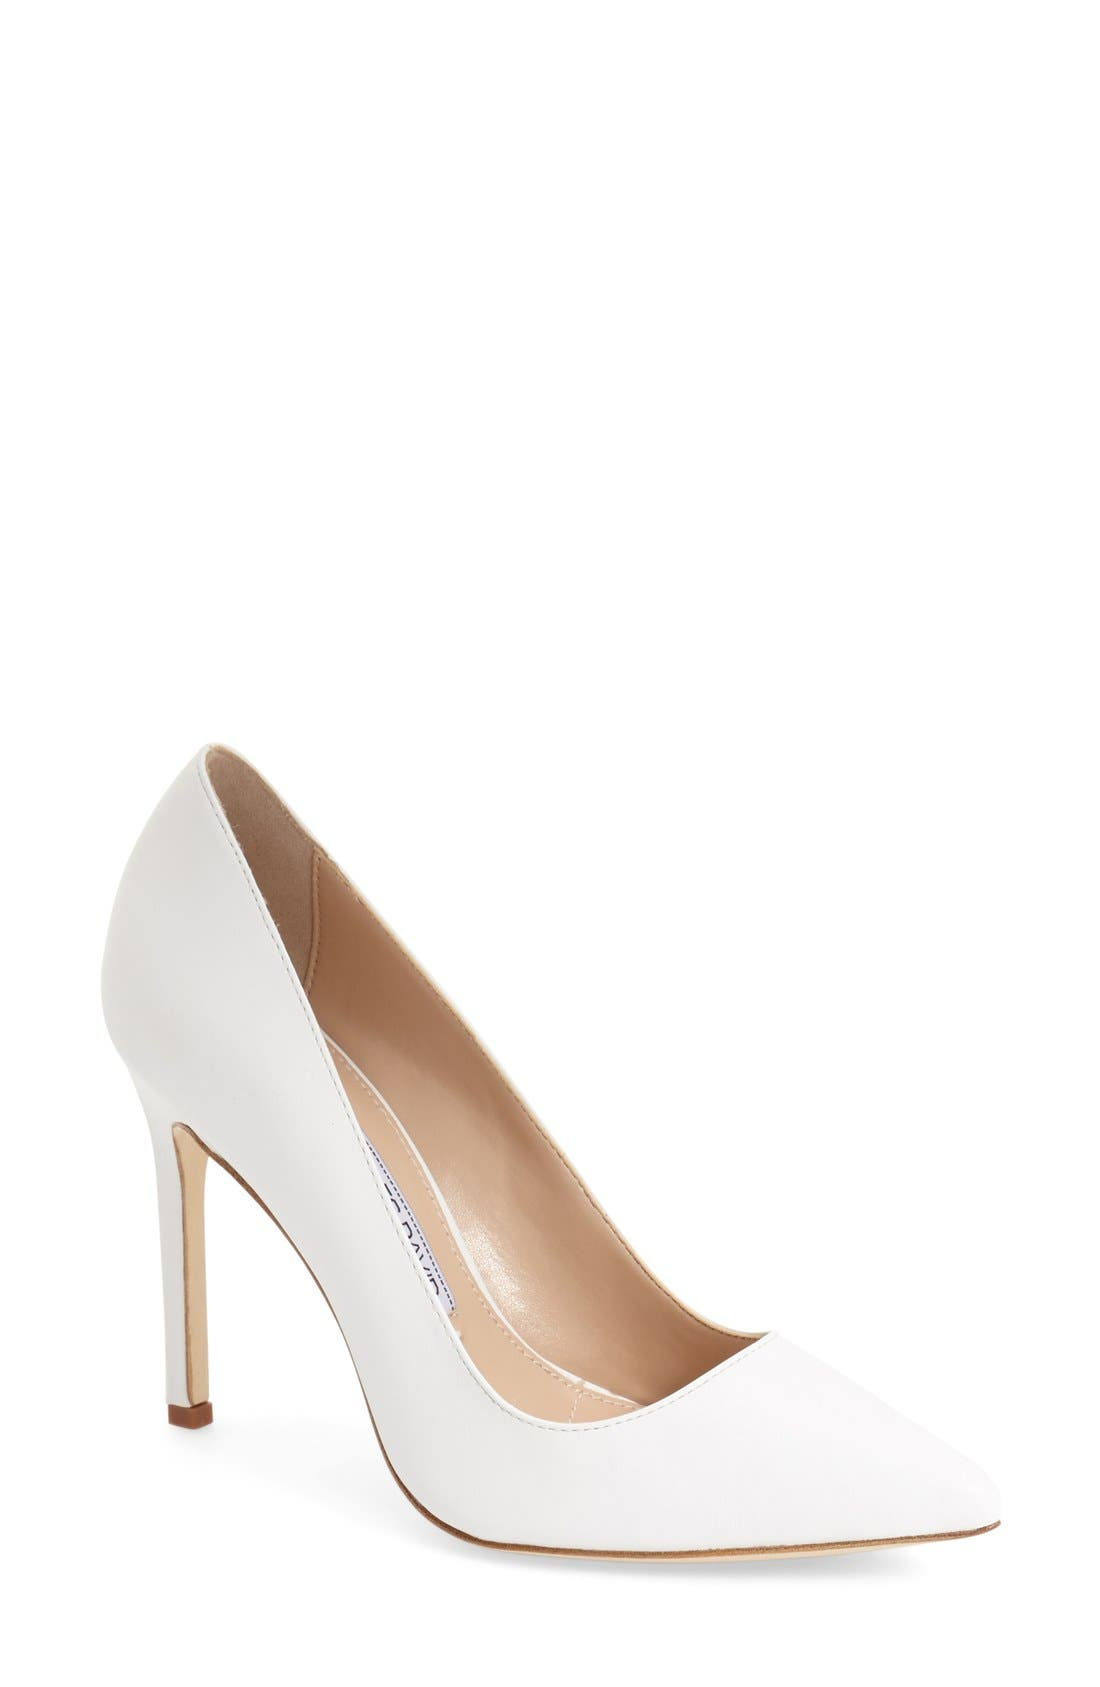 Alternate Image 1 Selected - Charles David 'Caterina' Pointy Toe Pump (Women) (Online Only)